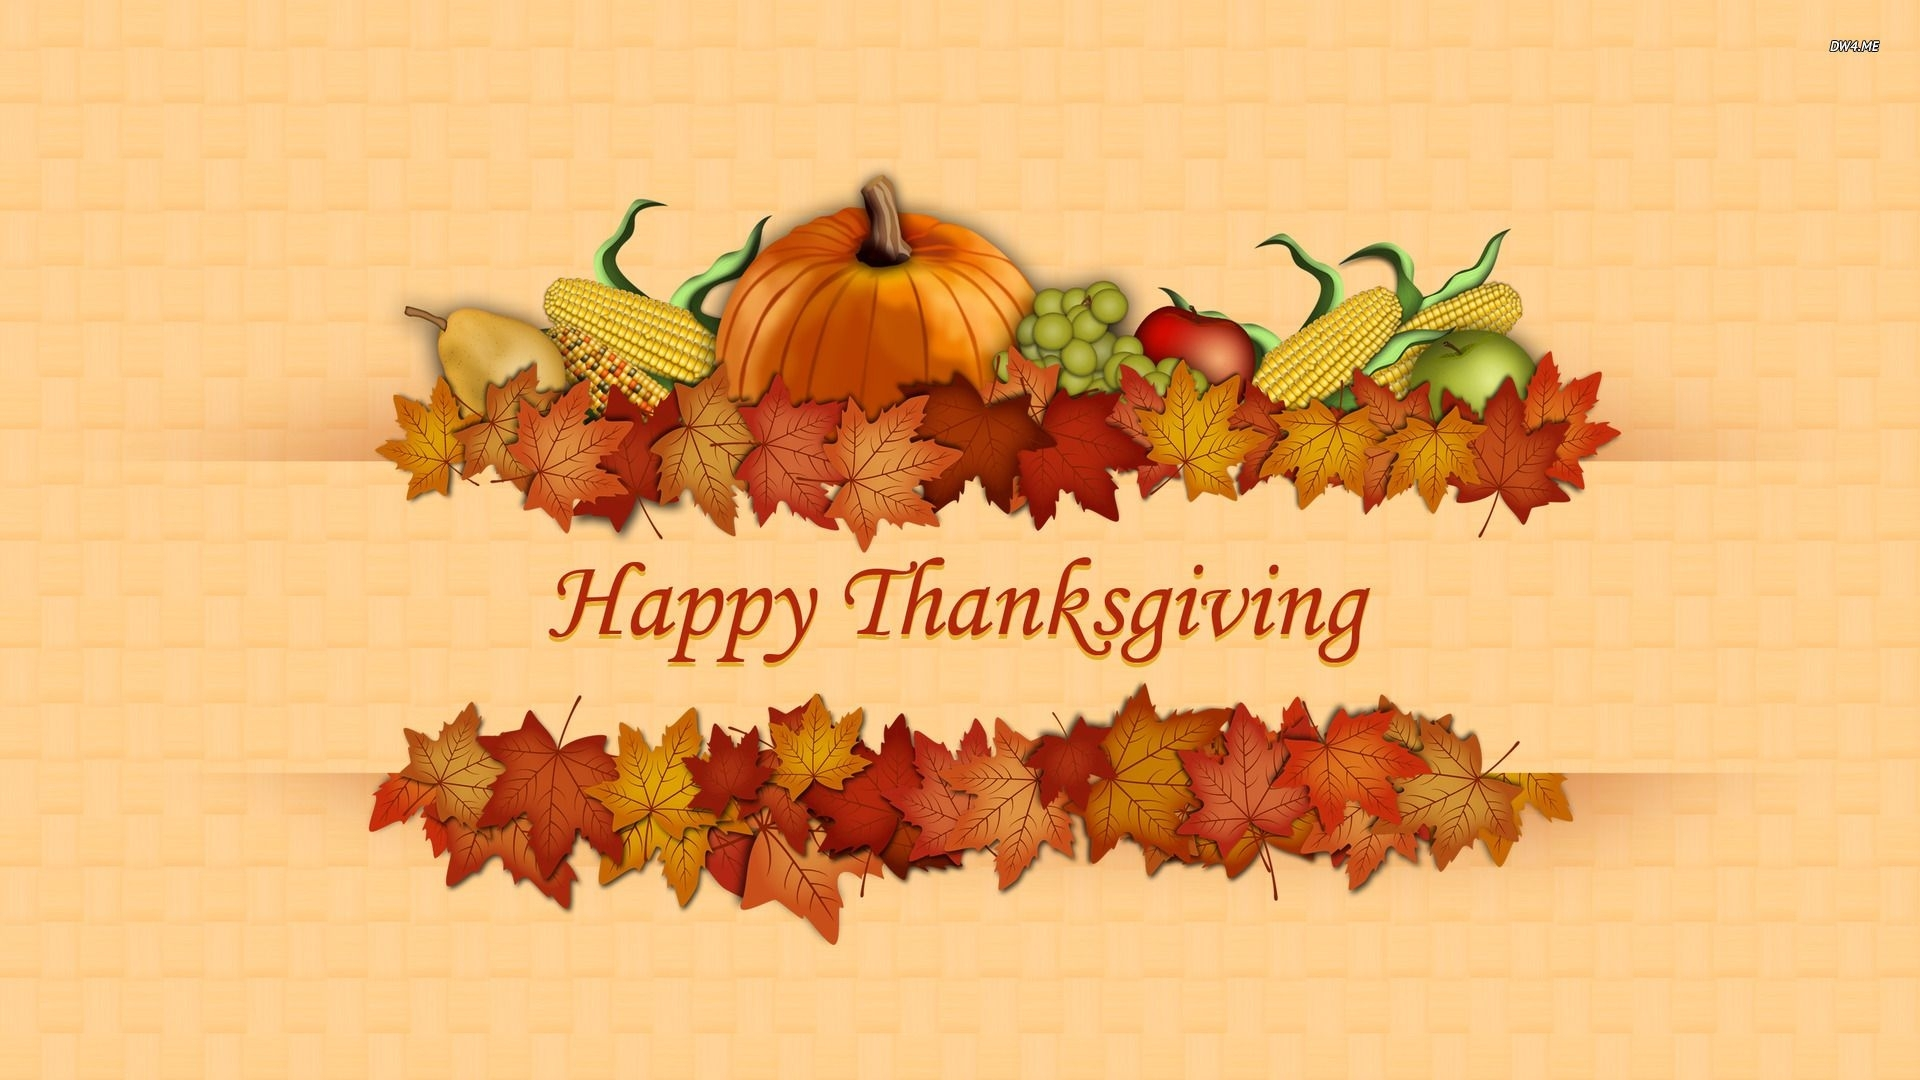 10 Top Free Thanksgiving Screensavers Wallpaper FULL HD 1080p For PC Desktop